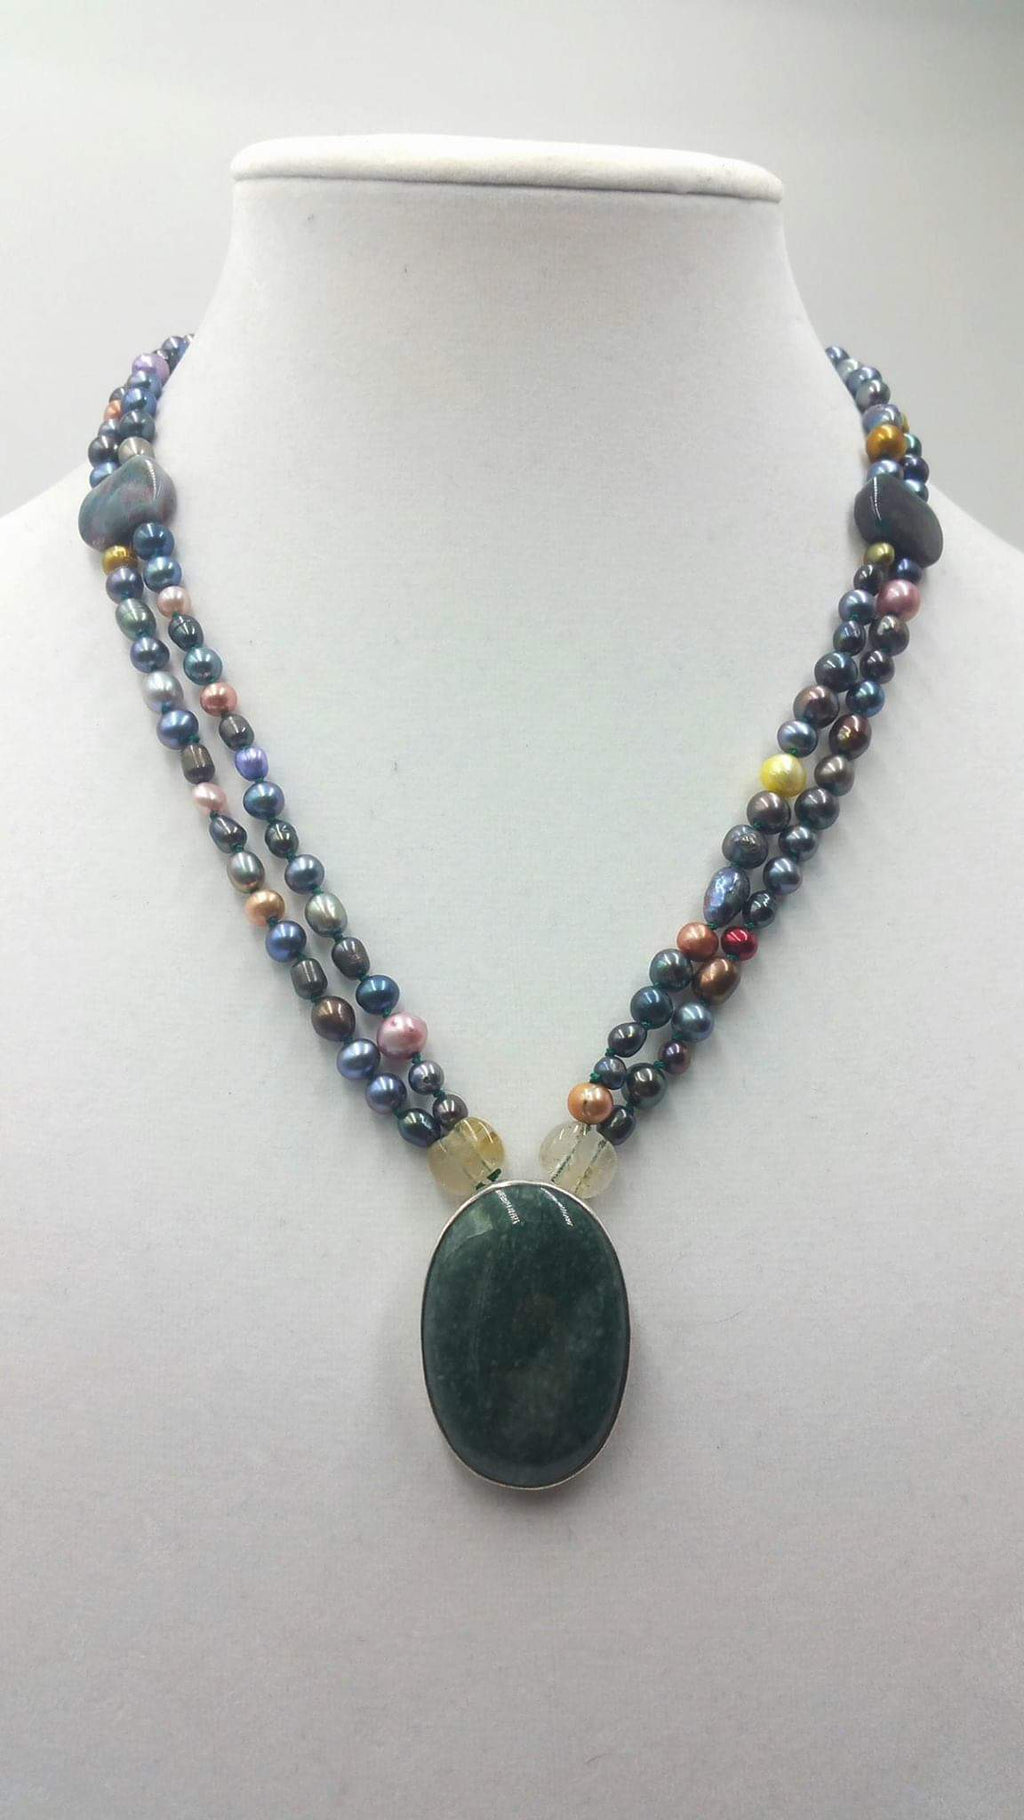 2-strand, multi-colored pearl, agate, citrine, sterling, aventurine, pendant necklace.